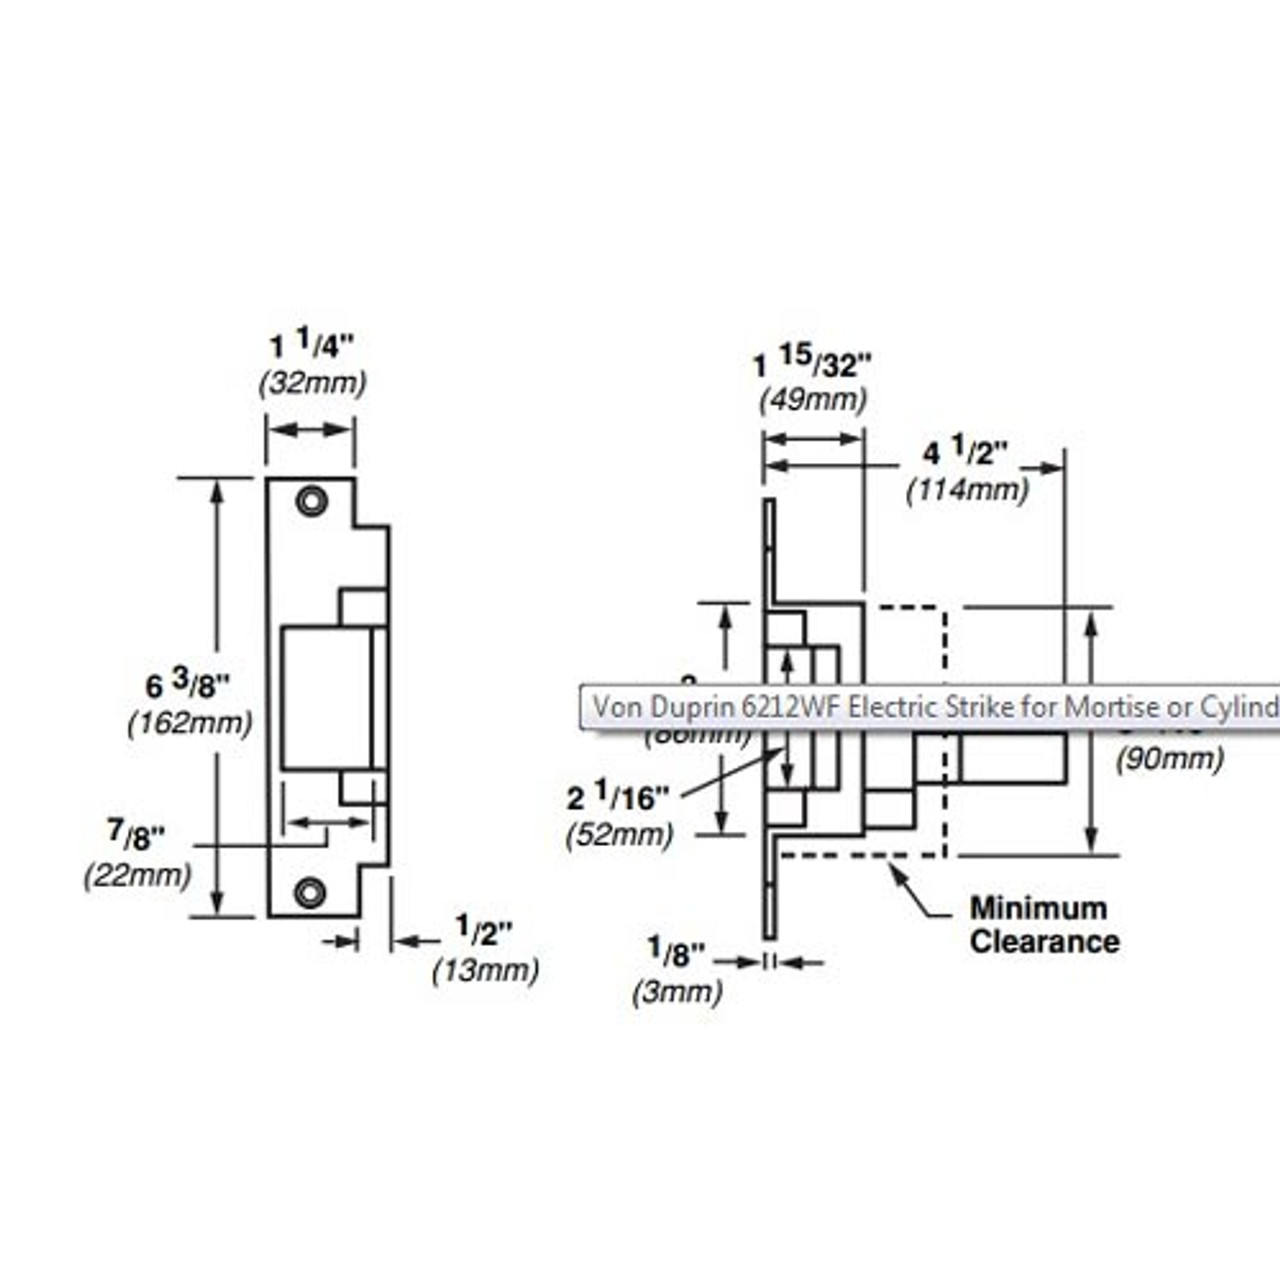 6212WF-DS-LC-12VDC-US3 Von Duprin Electric Strike for Mortise or Cylindrical Locksets in Bright Brass Finish